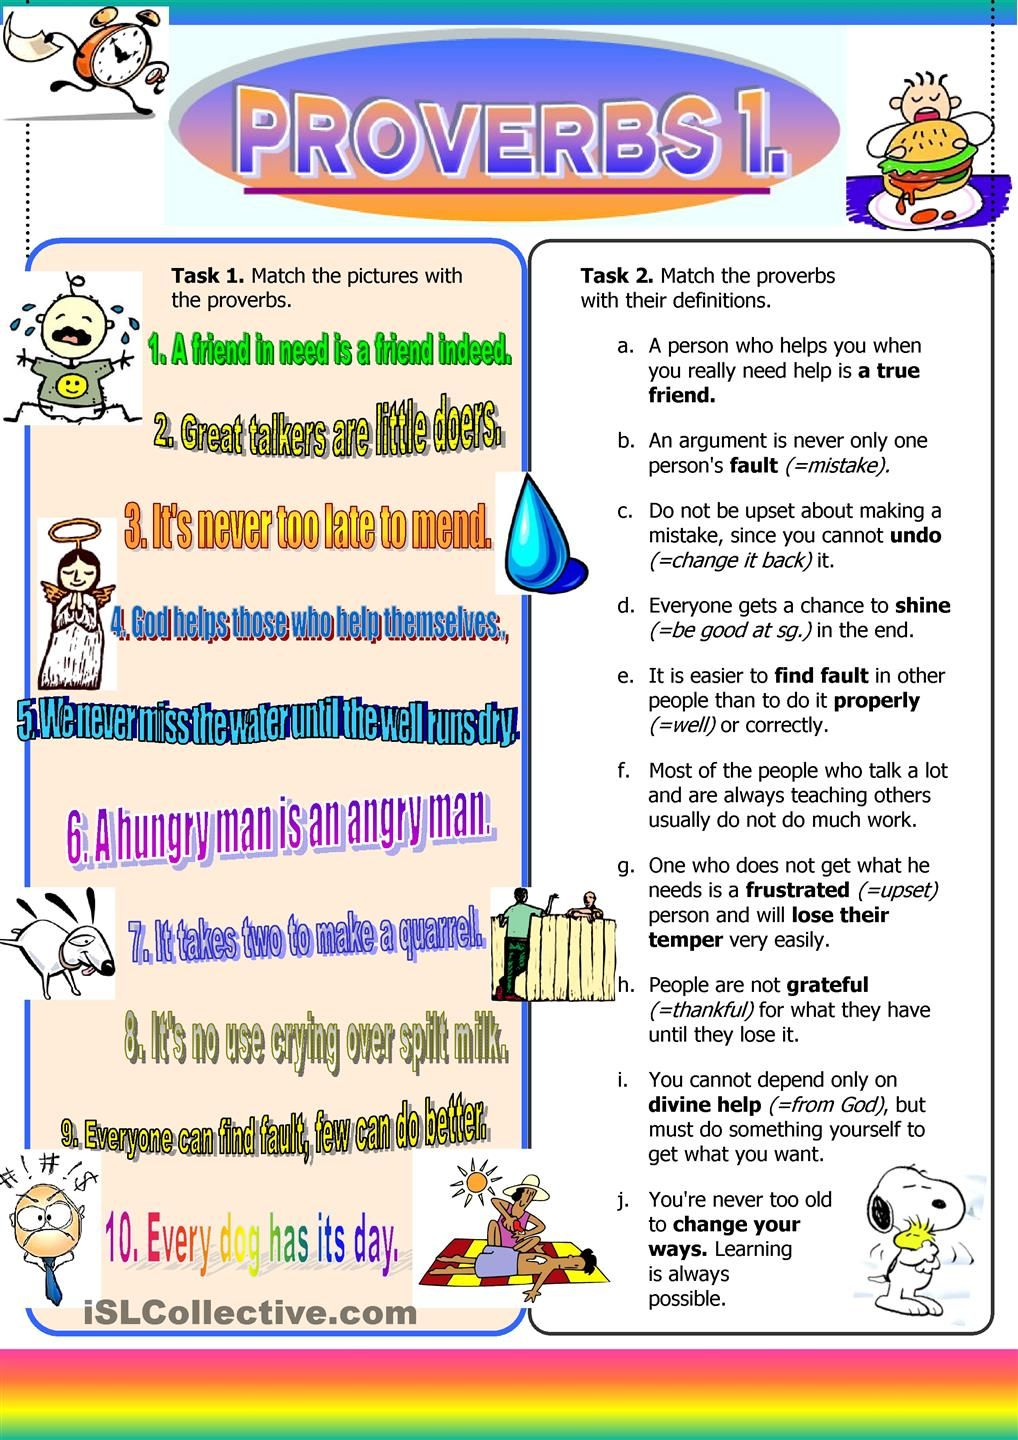 60 Free Esl Proverbs Worksheets Proverbs For Kids Proverbs Bible Lessons [ 1440 x 1018 Pixel ]